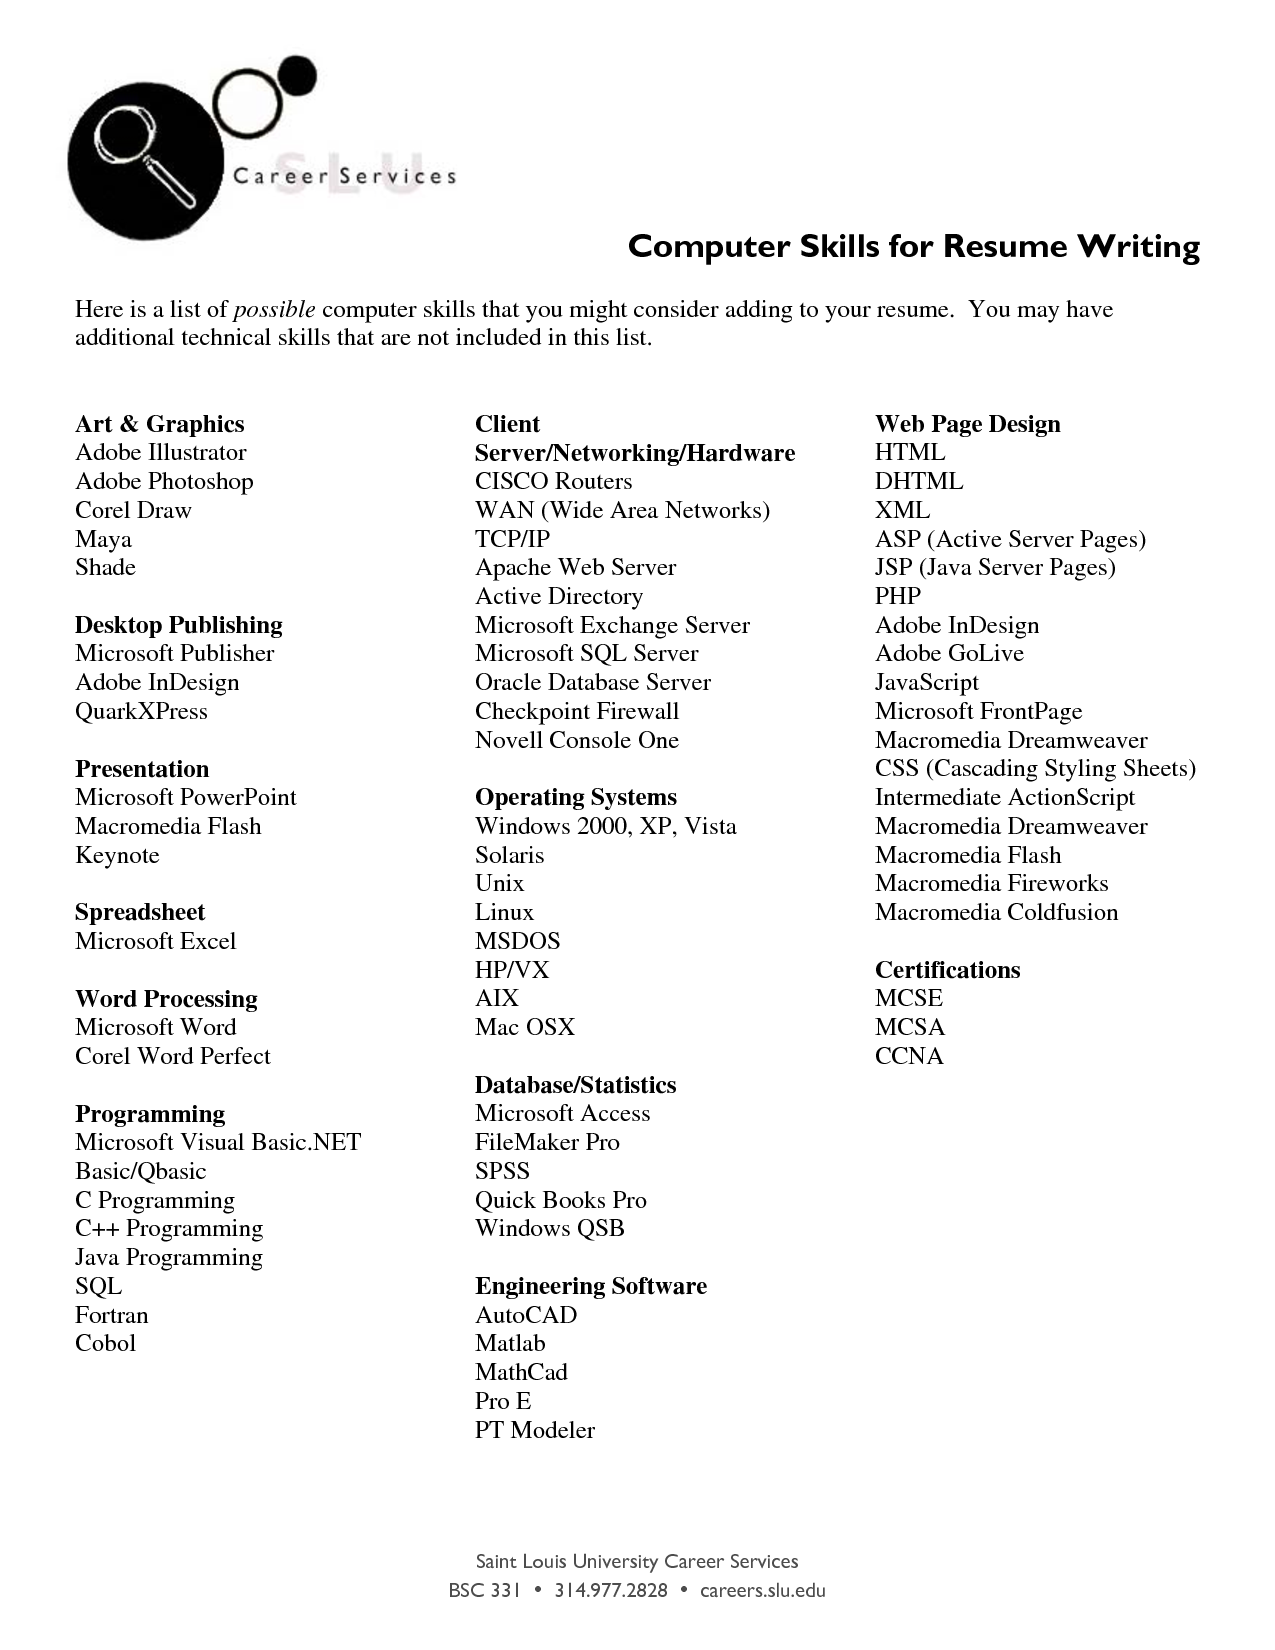 List Of Computer Skills For Resume Brilliant Pinmaria Johnson On Work  Resumes And Cover Letters  Pinterest